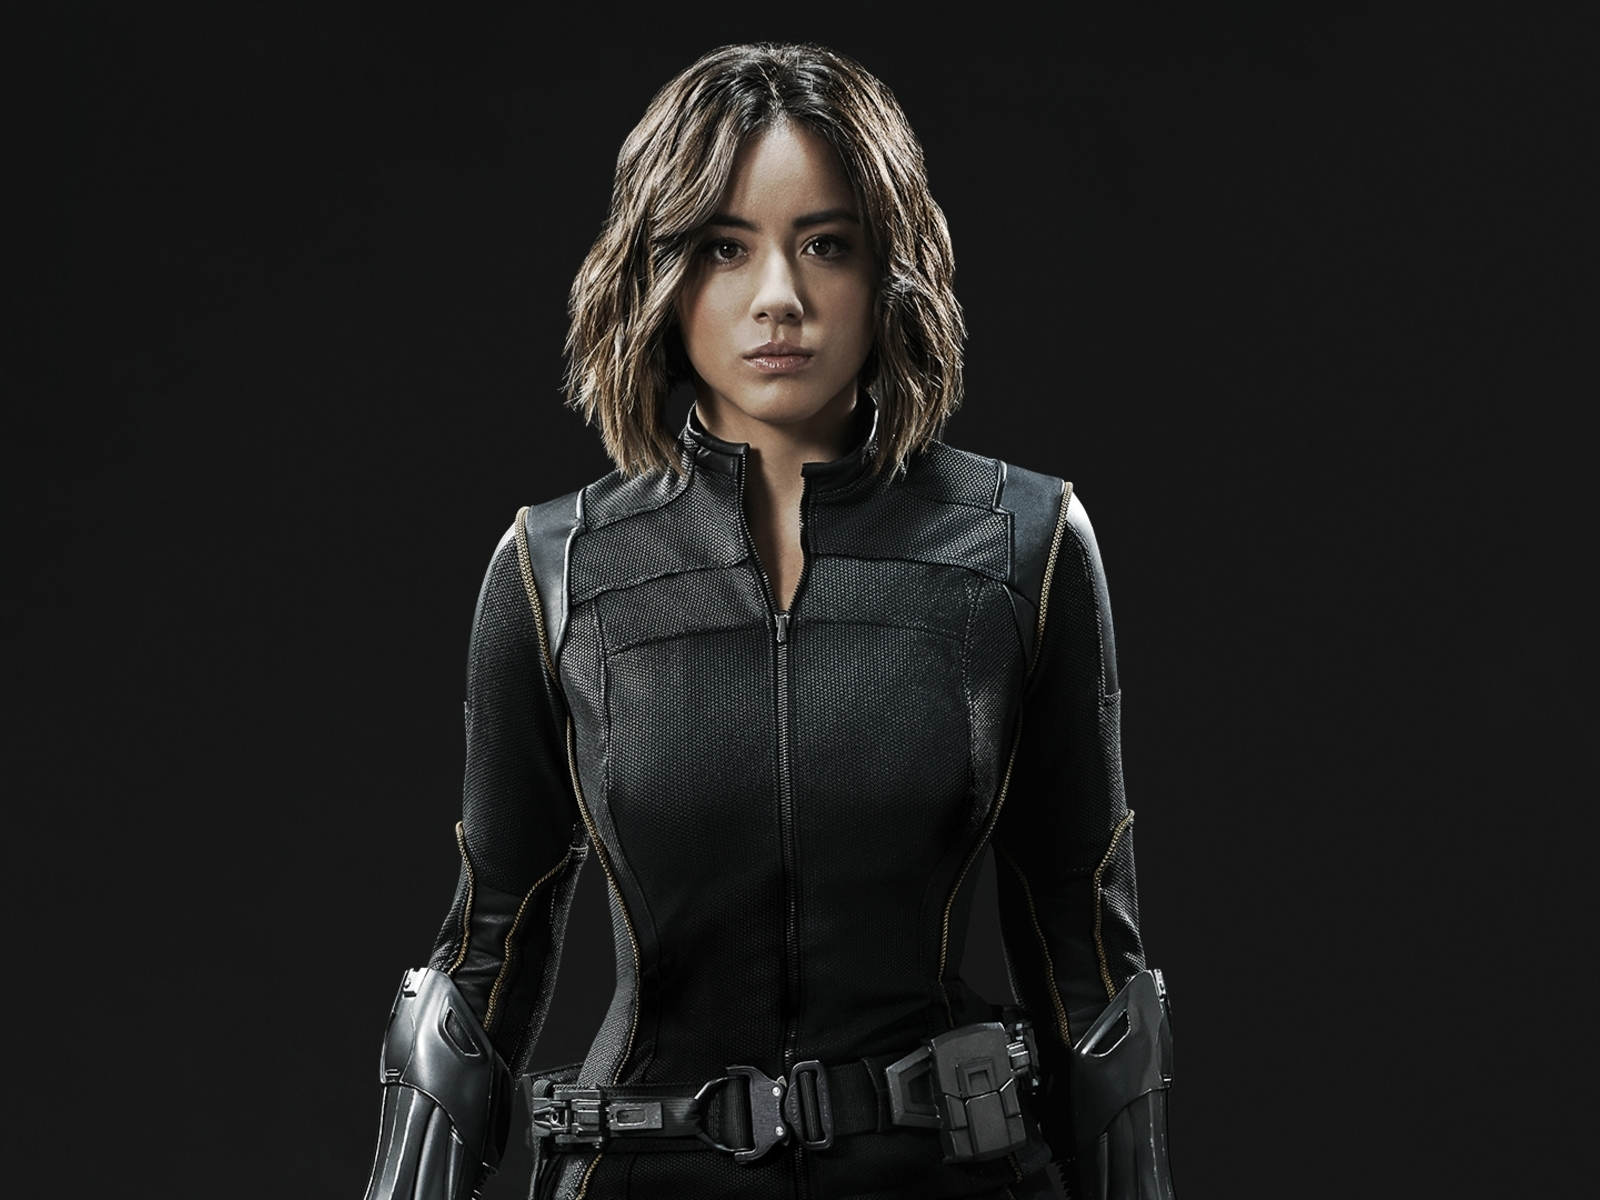 chloe-bennet-agent-of-shield-po.jpg